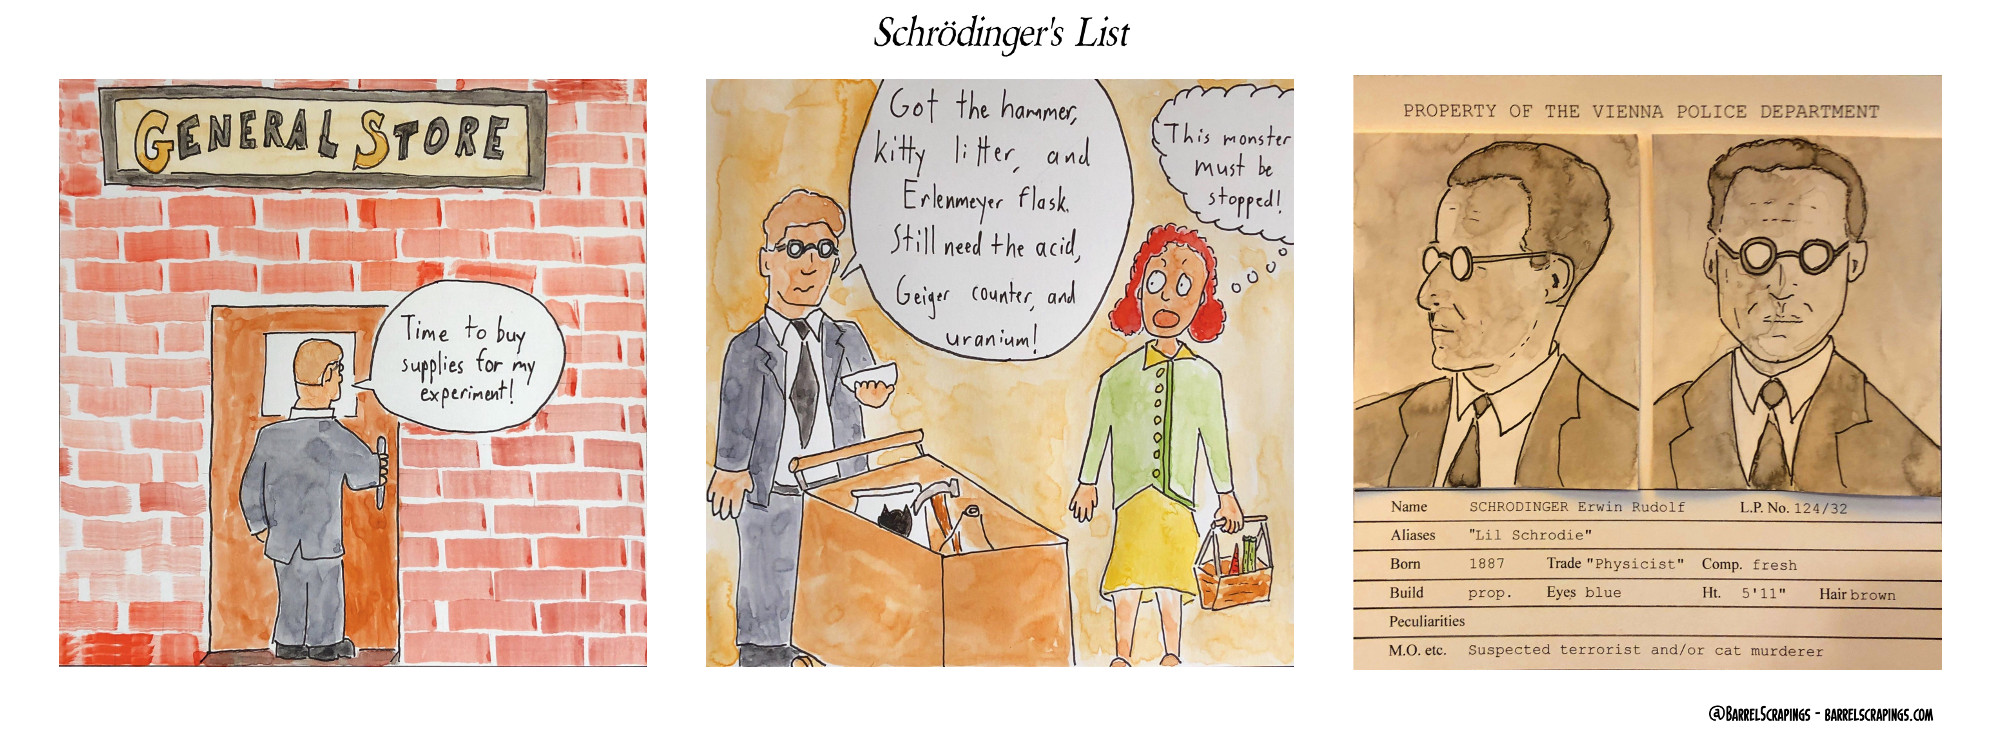 "Panel 1: Man in suit enters hardware store saying ""Time to buy supplies for my experiment!"". Panel 2: Man in suit has a shopping cart filled with some items. A woman looks on aghast. Man: ""Got the hammer, kitty litter, and Erlenmeyer flask. Still need the acid, Geiger counter and uranium!"". Woman thinks, ""This monster must be stopped!"". Panel 3: Two mugshots of the man are shown rendered in realistic manner in black and white. It's a booking sheet. ""Property of the Vienna Police Department."" Name: SCHRODINGER Erwin Rudol. Aliases ""Lil Schrodie"" M.O. etc, ""Suspected terrorist and/or cat murderer"""